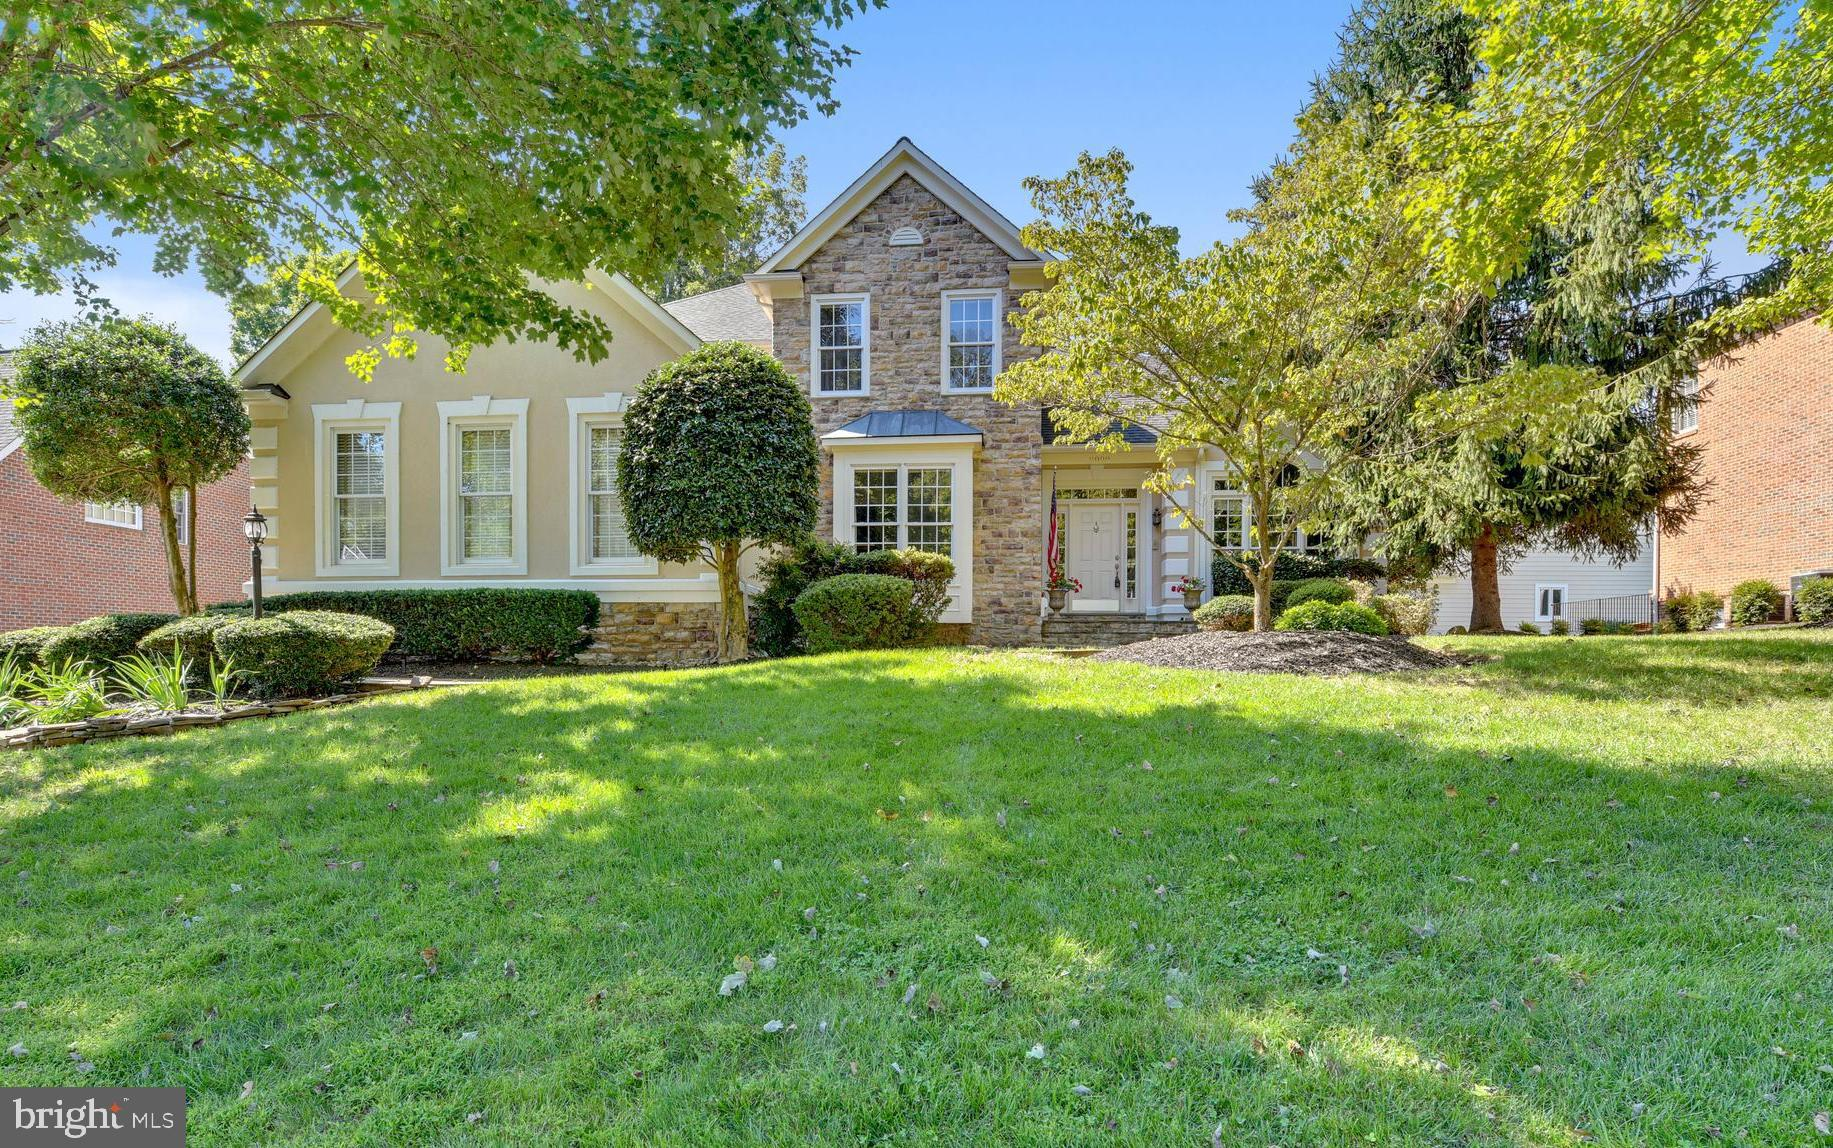 Absolutely Beautiful Colonial in Sought After Lake Manassas, Move In Ready! A Gated Golf Course Community. Incredible Floor Plan Featuring A Main Level Master Suite. Gleaming Hardwood Floors Throughout The Main Level. Updated Gourmet Kitchen With Stainless Appliances, Center Island and Cabinets Galore. Breakfast Nook. Family Room With Double Sided Gas Fireplace. Formal Dining Room With Crown Molding. Study With French Doors and Double Sided Gas Fireplace. The Upper Level Features 4 Great Size Bedrooms and 2 Full Baths. The Walk Up Basement Includes a Large Rec Room, Full Bath, Laundry Room, Media Room and A Beautiful Custom Professional Office With A Walk Up. Breathtaking Screened in Porch Perfect For 3 Seasons and Deck Overlooking Trees and Golf Course with A Built In Natural Gas BBQ Grill. Newer Roof and HVAC. Walking Distance To Restaurants and Shops. Come Stay Awhile.. Fall In Love and Make An Offer.